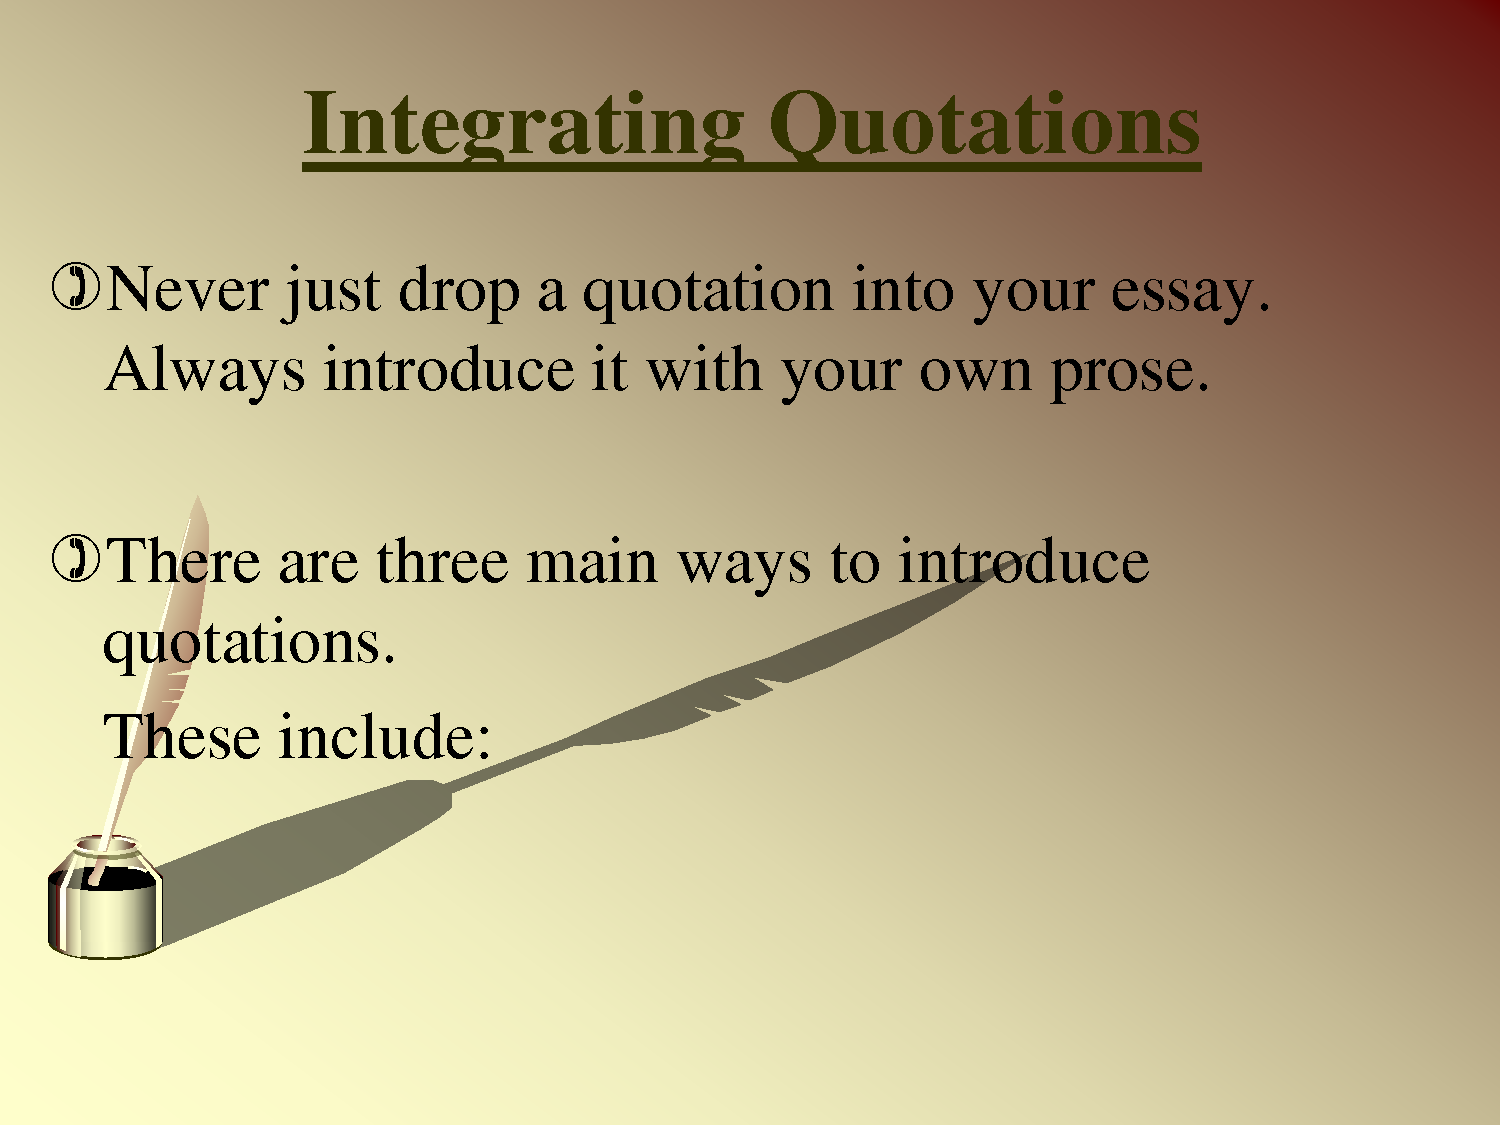 incorporating quotes into essays worksheet Integrating quotations - laguardia arts high school instructions: after reviewing the information below, rewrite each quotation in your essay on the back of this sheet so that it is properly.